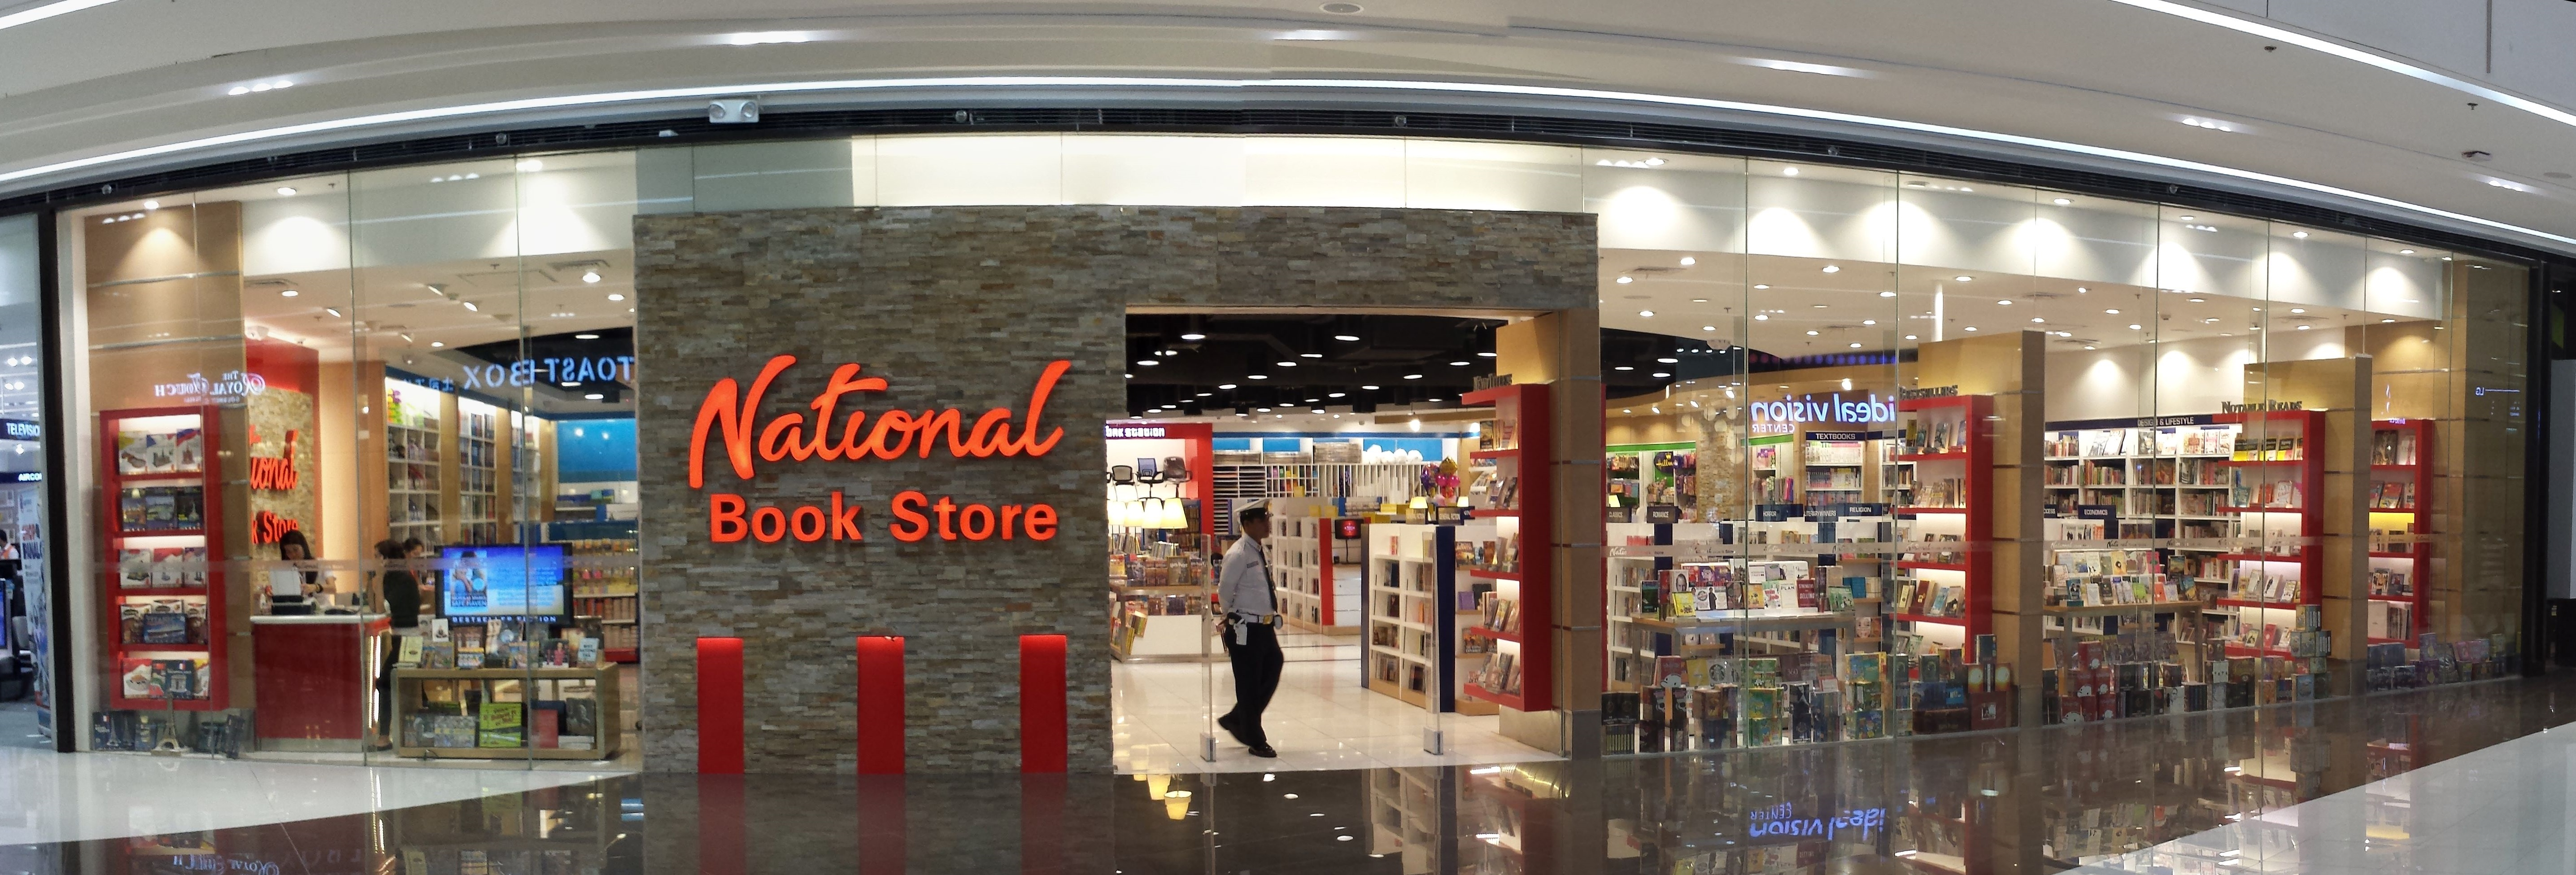 File:National Book Store In SM Aura, BGC.jpg